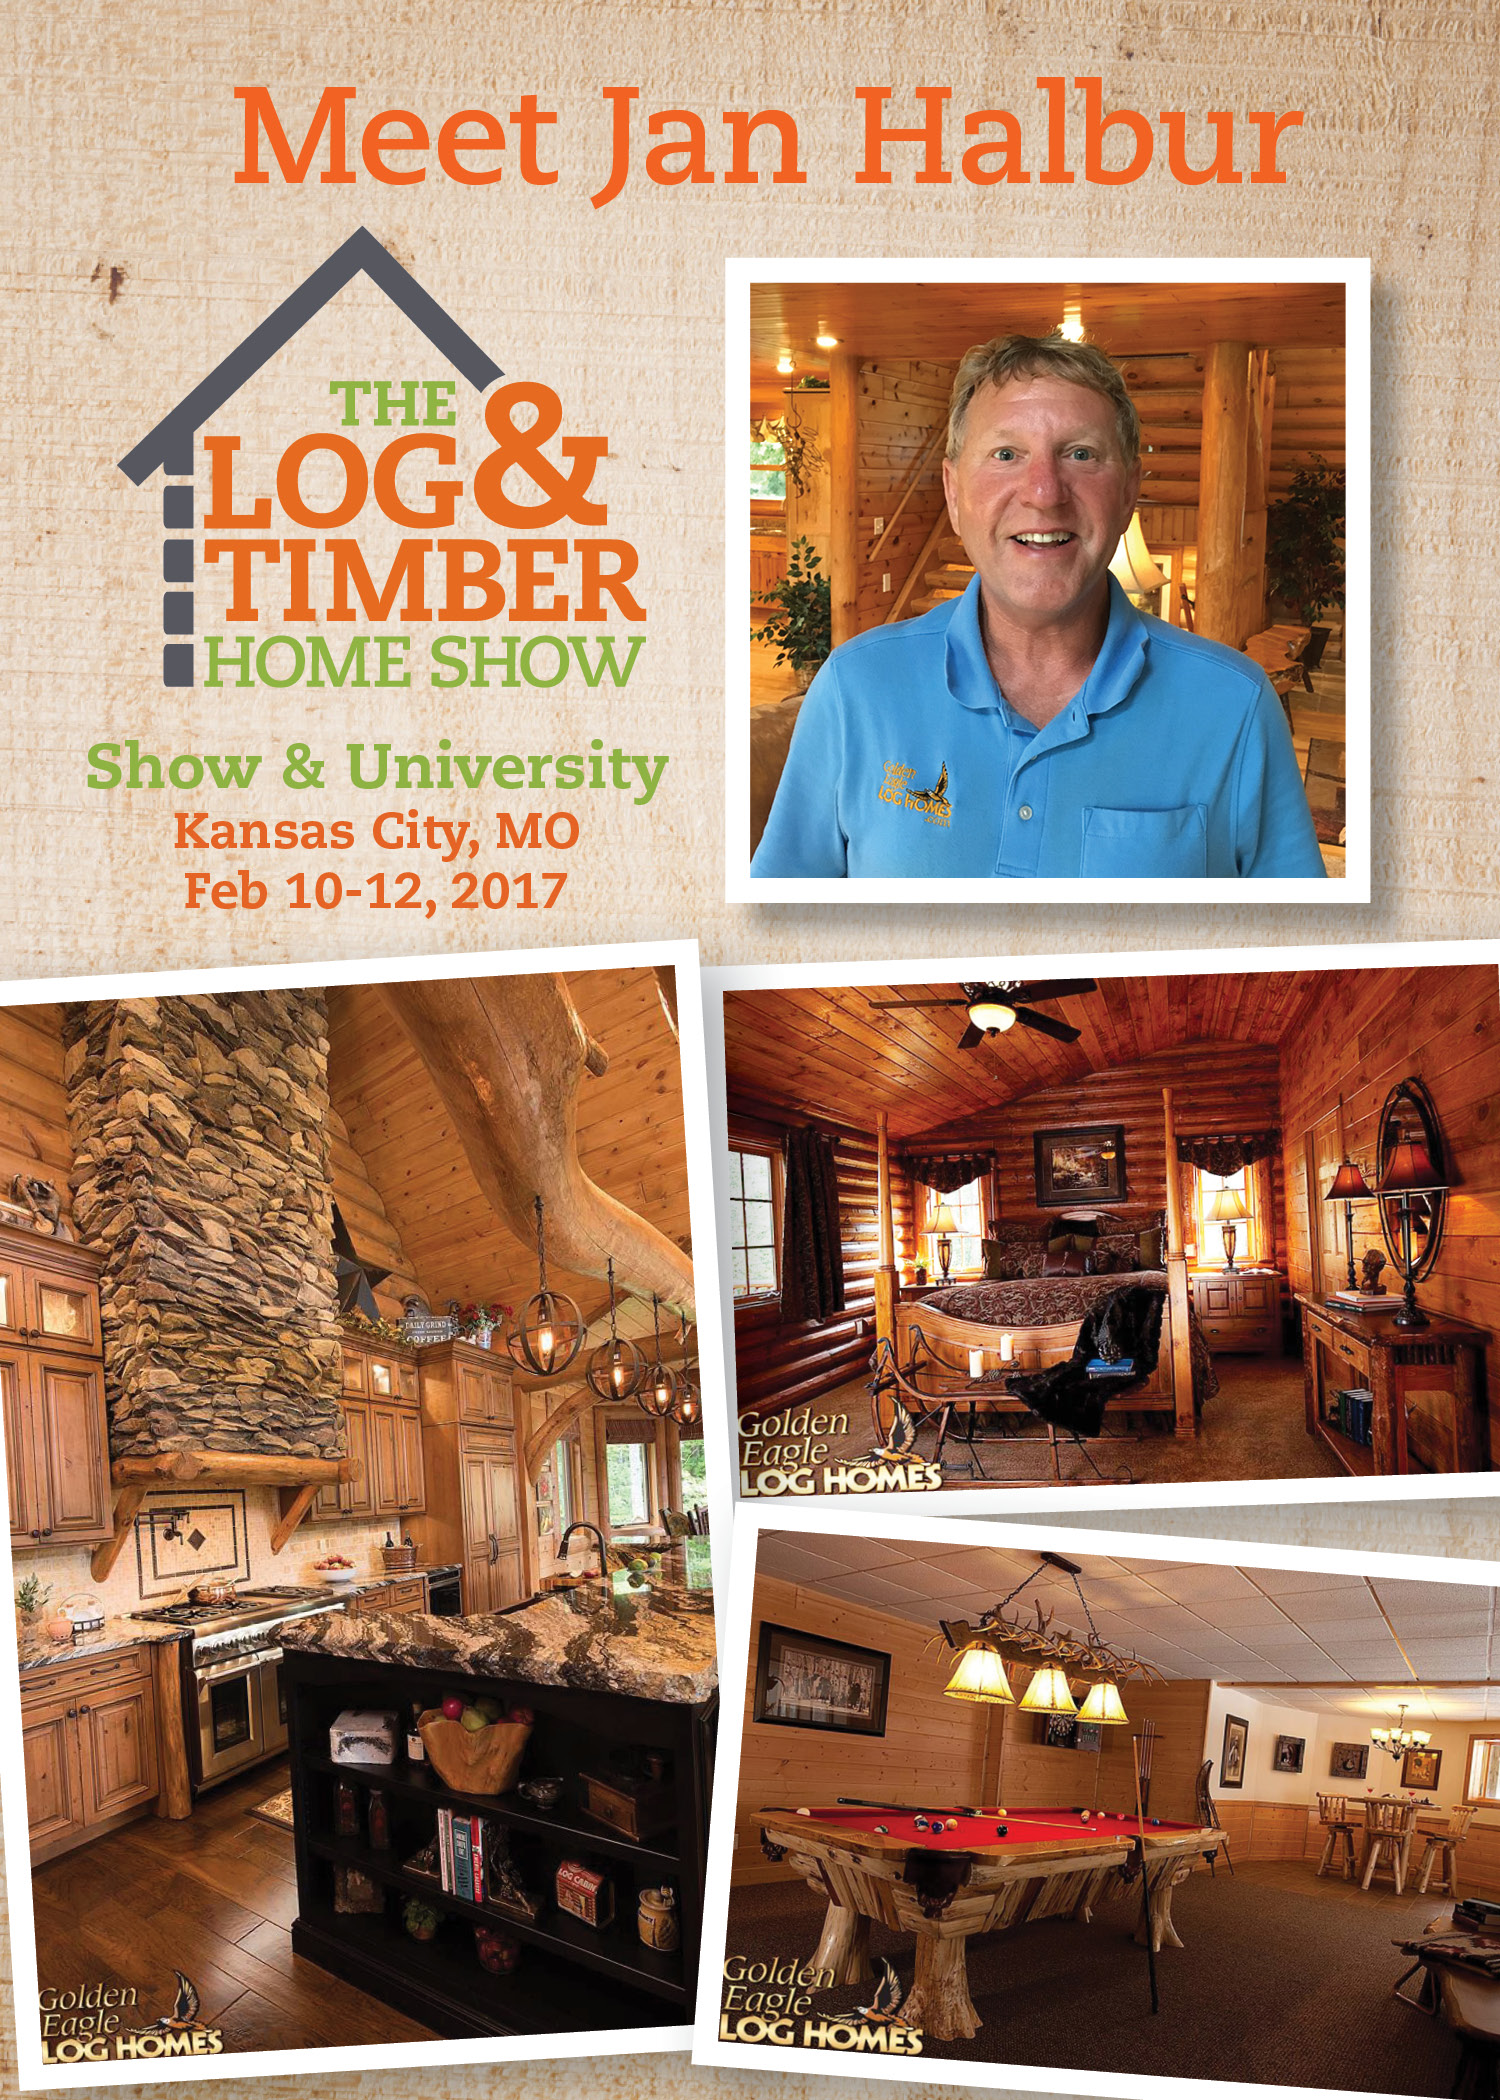 Kansas City, MO | Log & Timber Home Show | February 10-12, 2017 | Golden Eagle Log Homes | Jan Halbur